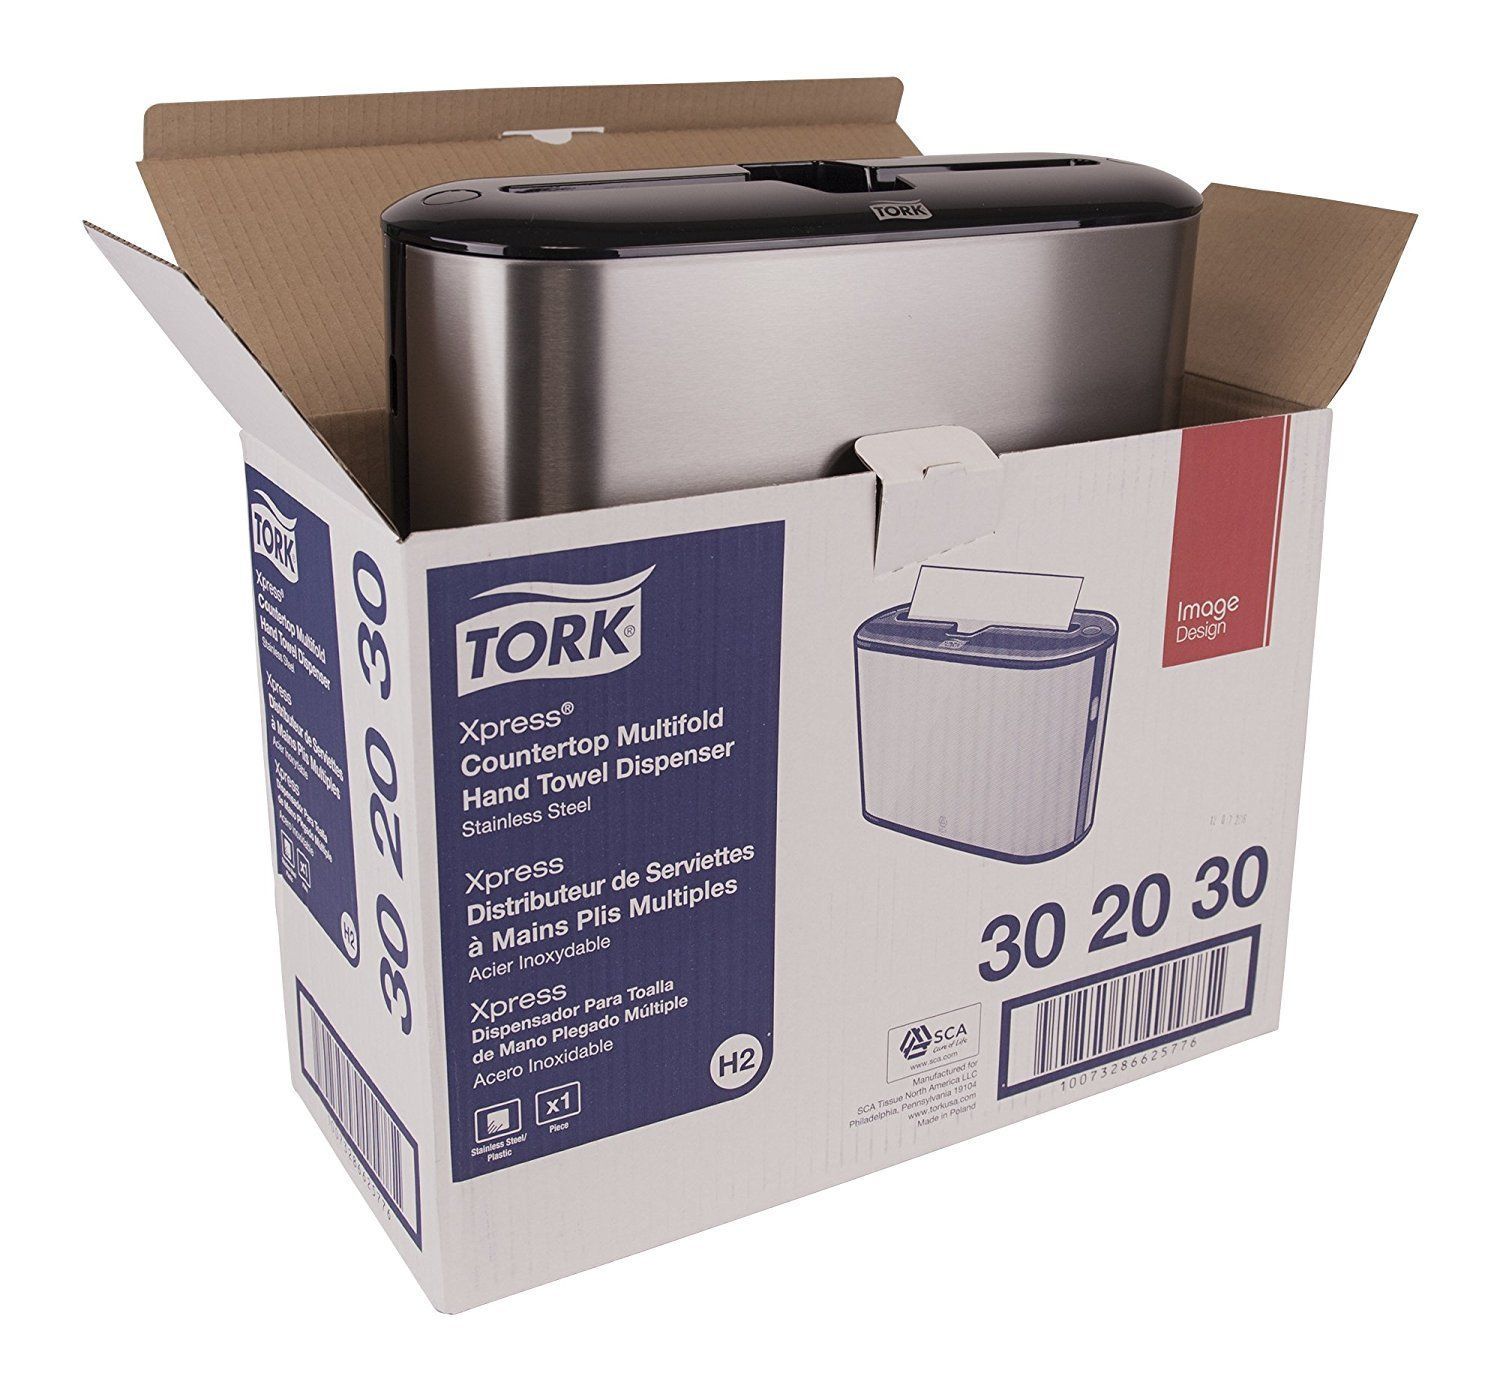 Tork 1 Xpress Countertop Multifold Hand Towel Dispenser 302030 Stainless Steel Read More Reviews Of The Product